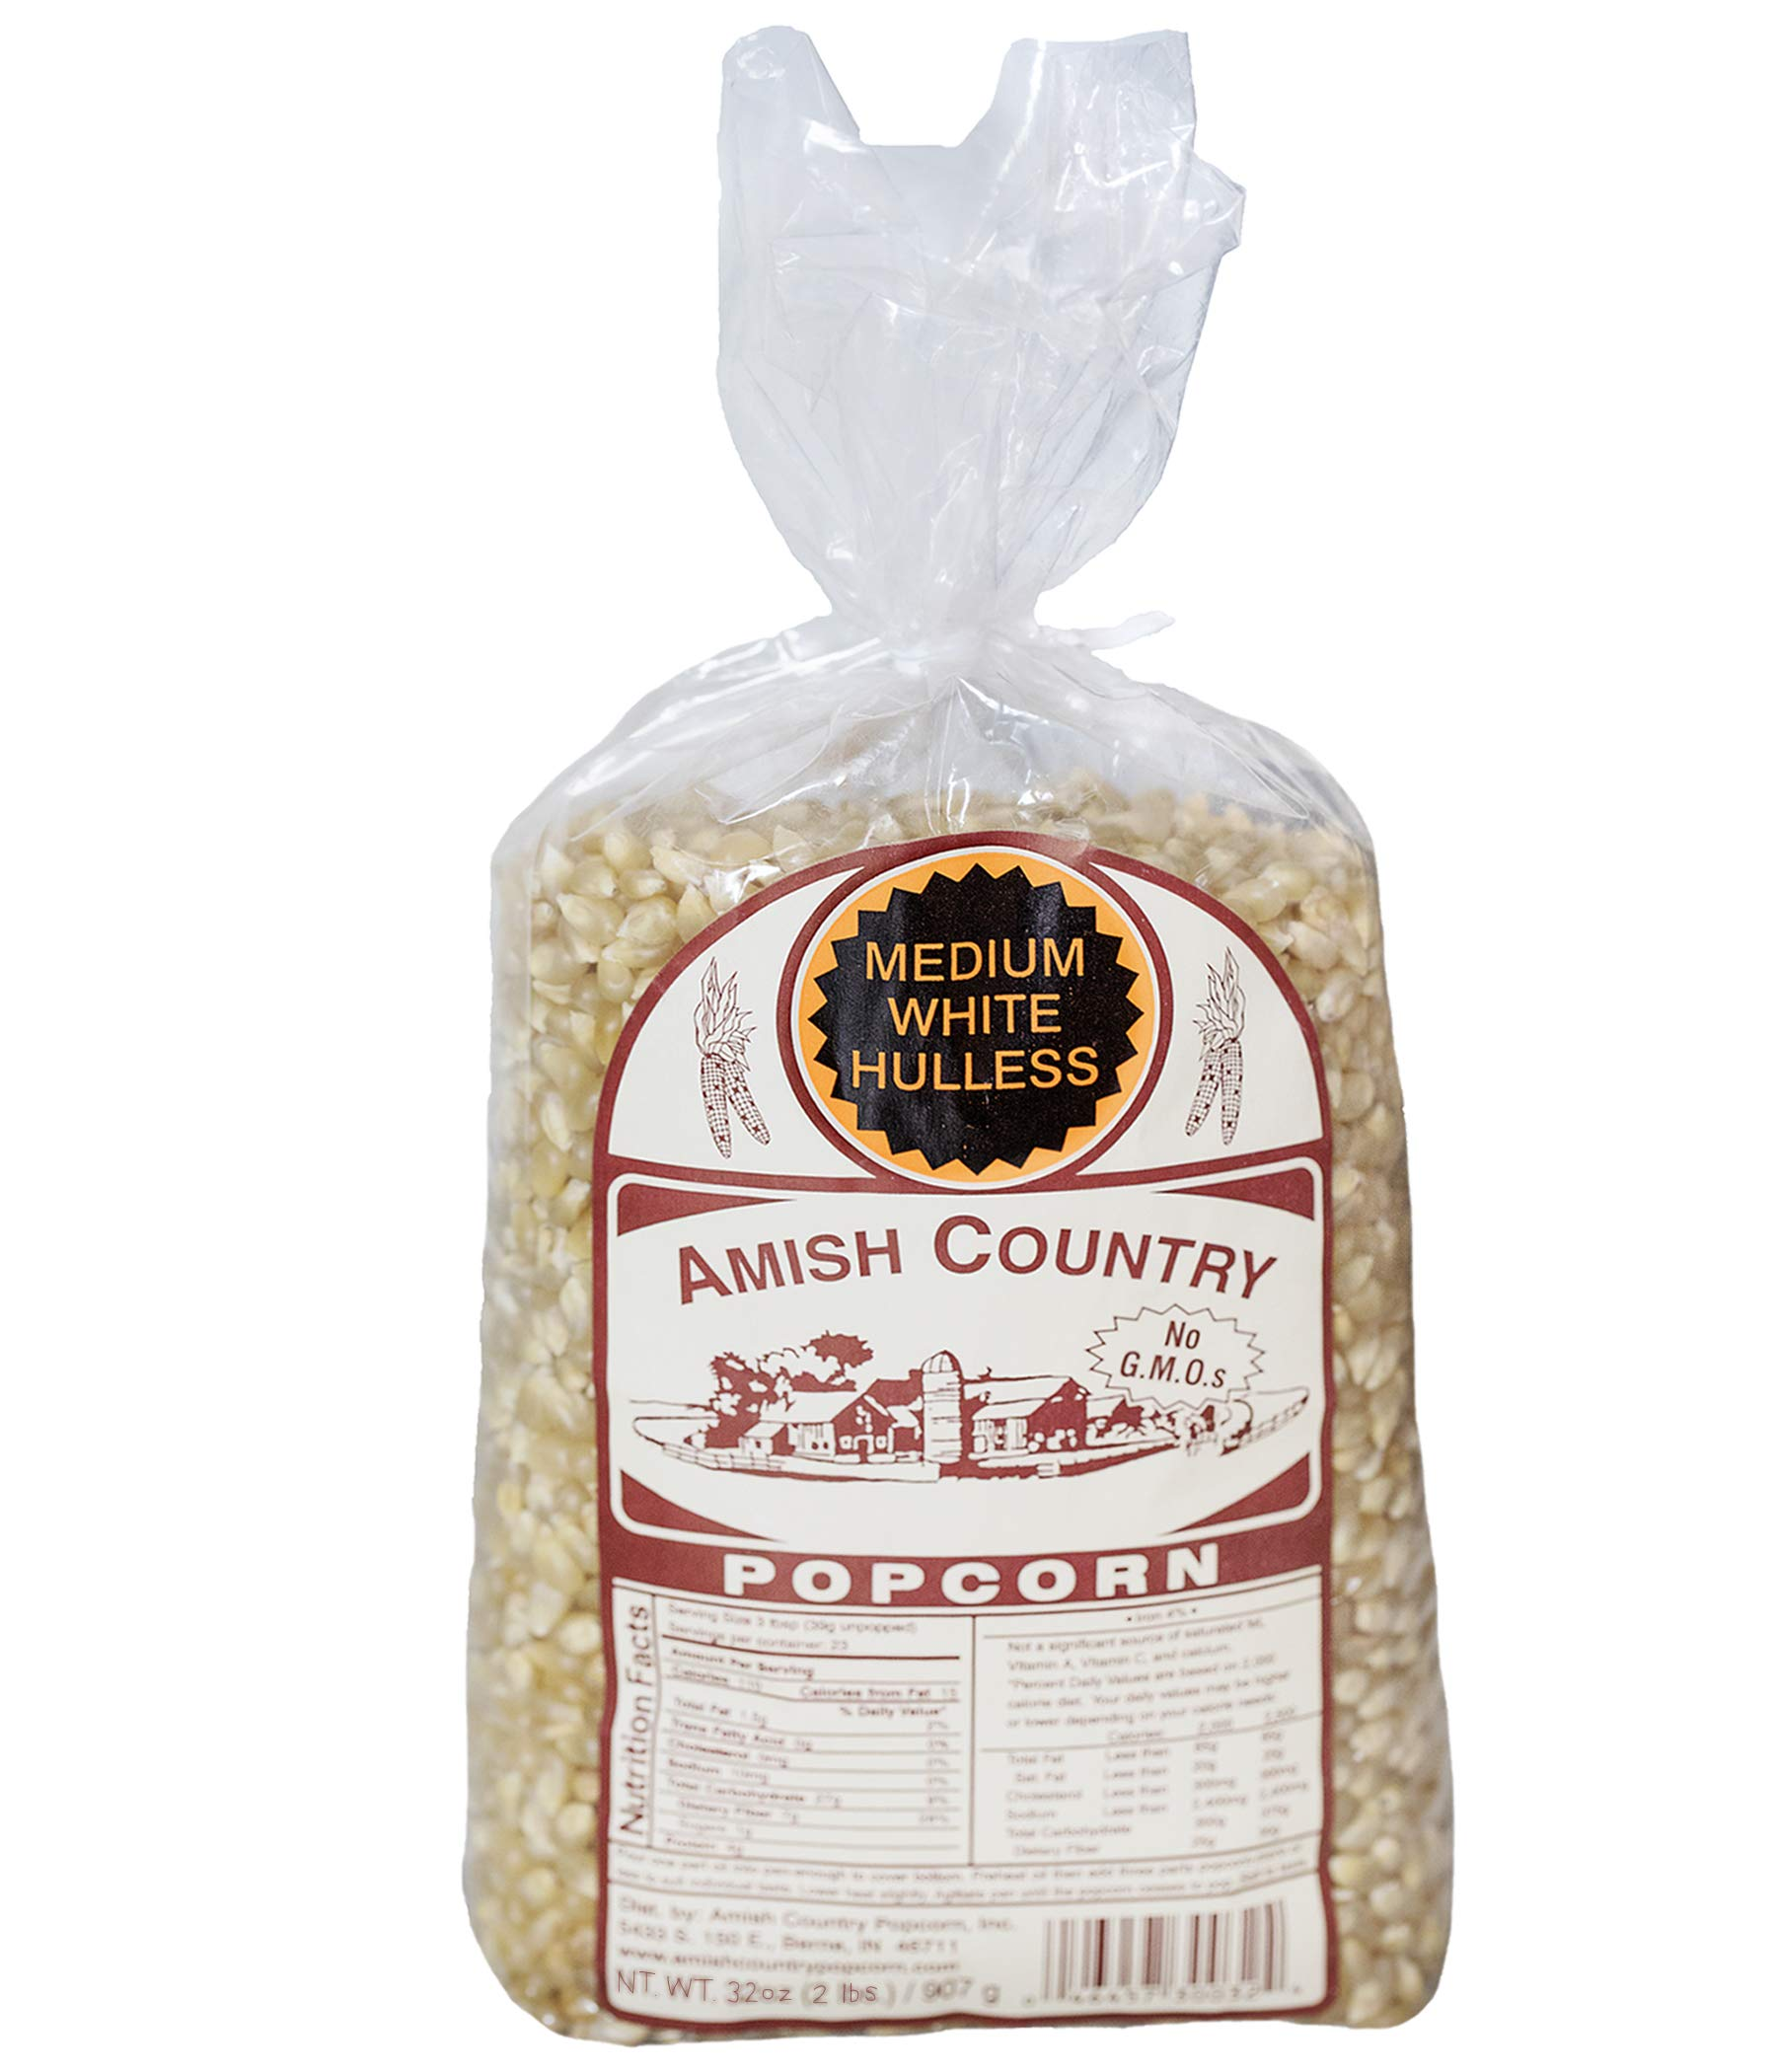 Amish Country Popcorn - Medium White Popcorn (2 Pound Bag) Old Fashioned, Non GMO, and Gluten Free - with Recipe Guide by Amish Country Popcorn (Image #1)